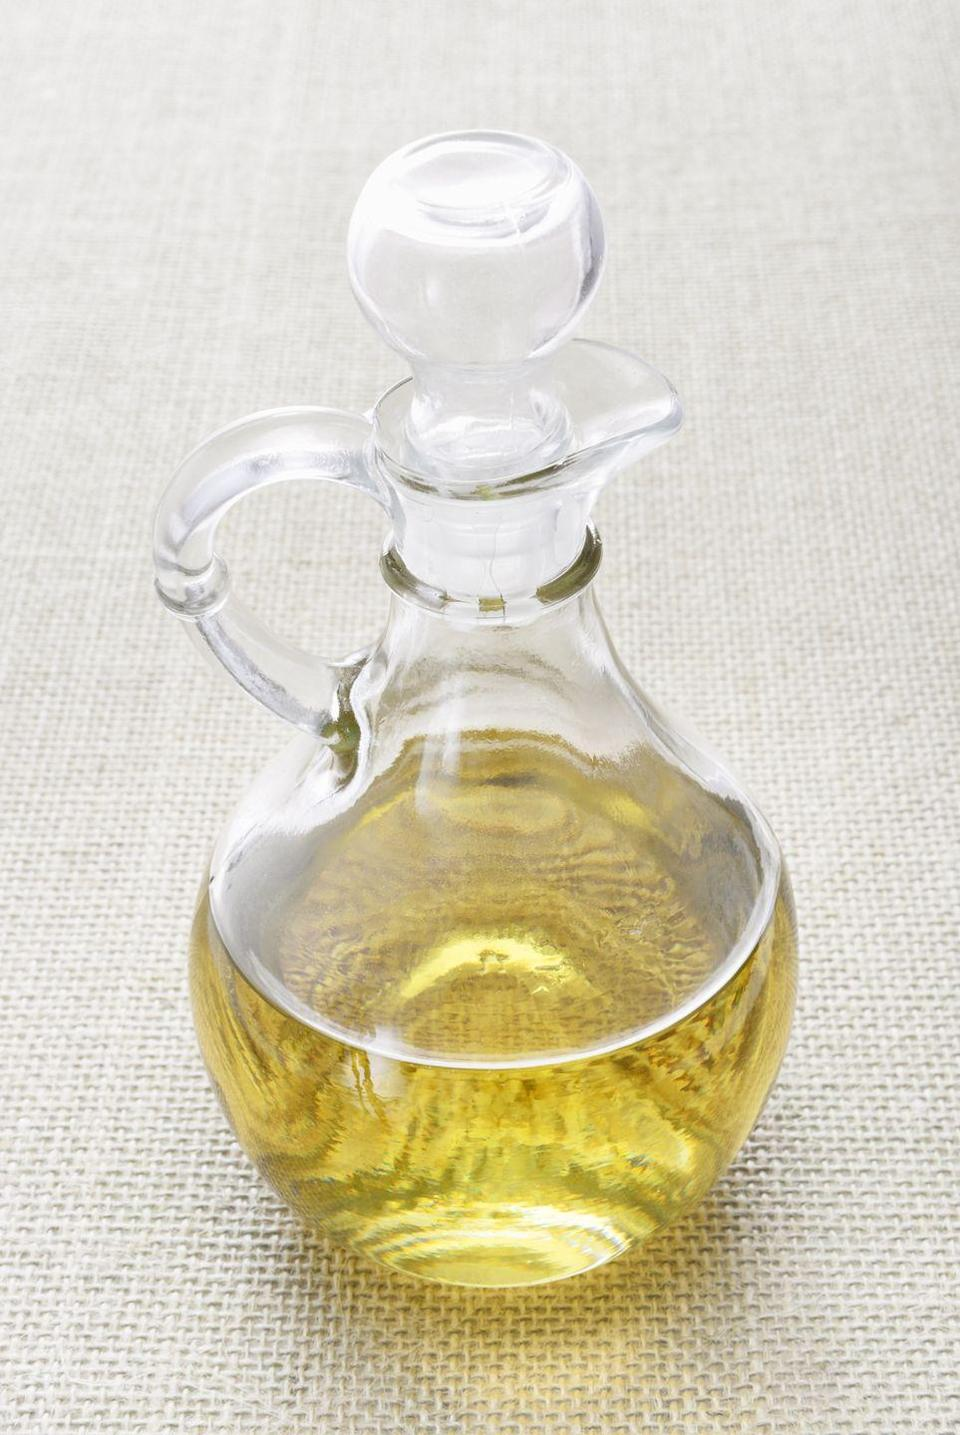 """<p>A tablespoon of this heart-healthy oil has all the <a href=""""http://pennstatehershey.adam.com/content.aspx?productId=107&pid=33&gid=000284"""" rel=""""nofollow noopener"""" target=""""_blank"""" data-ylk=""""slk:alpha-linolenic acid"""" class=""""link rapid-noclick-resp"""">alpha-linolenic acid</a> you need in a day, plus two different forms of vitamin E.</p><p><strong>Recipe to try:</strong> <a href=""""https://www.womansday.com/food-recipes/food-drinks/recipes/a13346/sesame-noodles-666/"""" rel=""""nofollow noopener"""" target=""""_blank"""" data-ylk=""""slk:Sesame Noodles"""" class=""""link rapid-noclick-resp"""">Sesame Noodles</a></p>"""